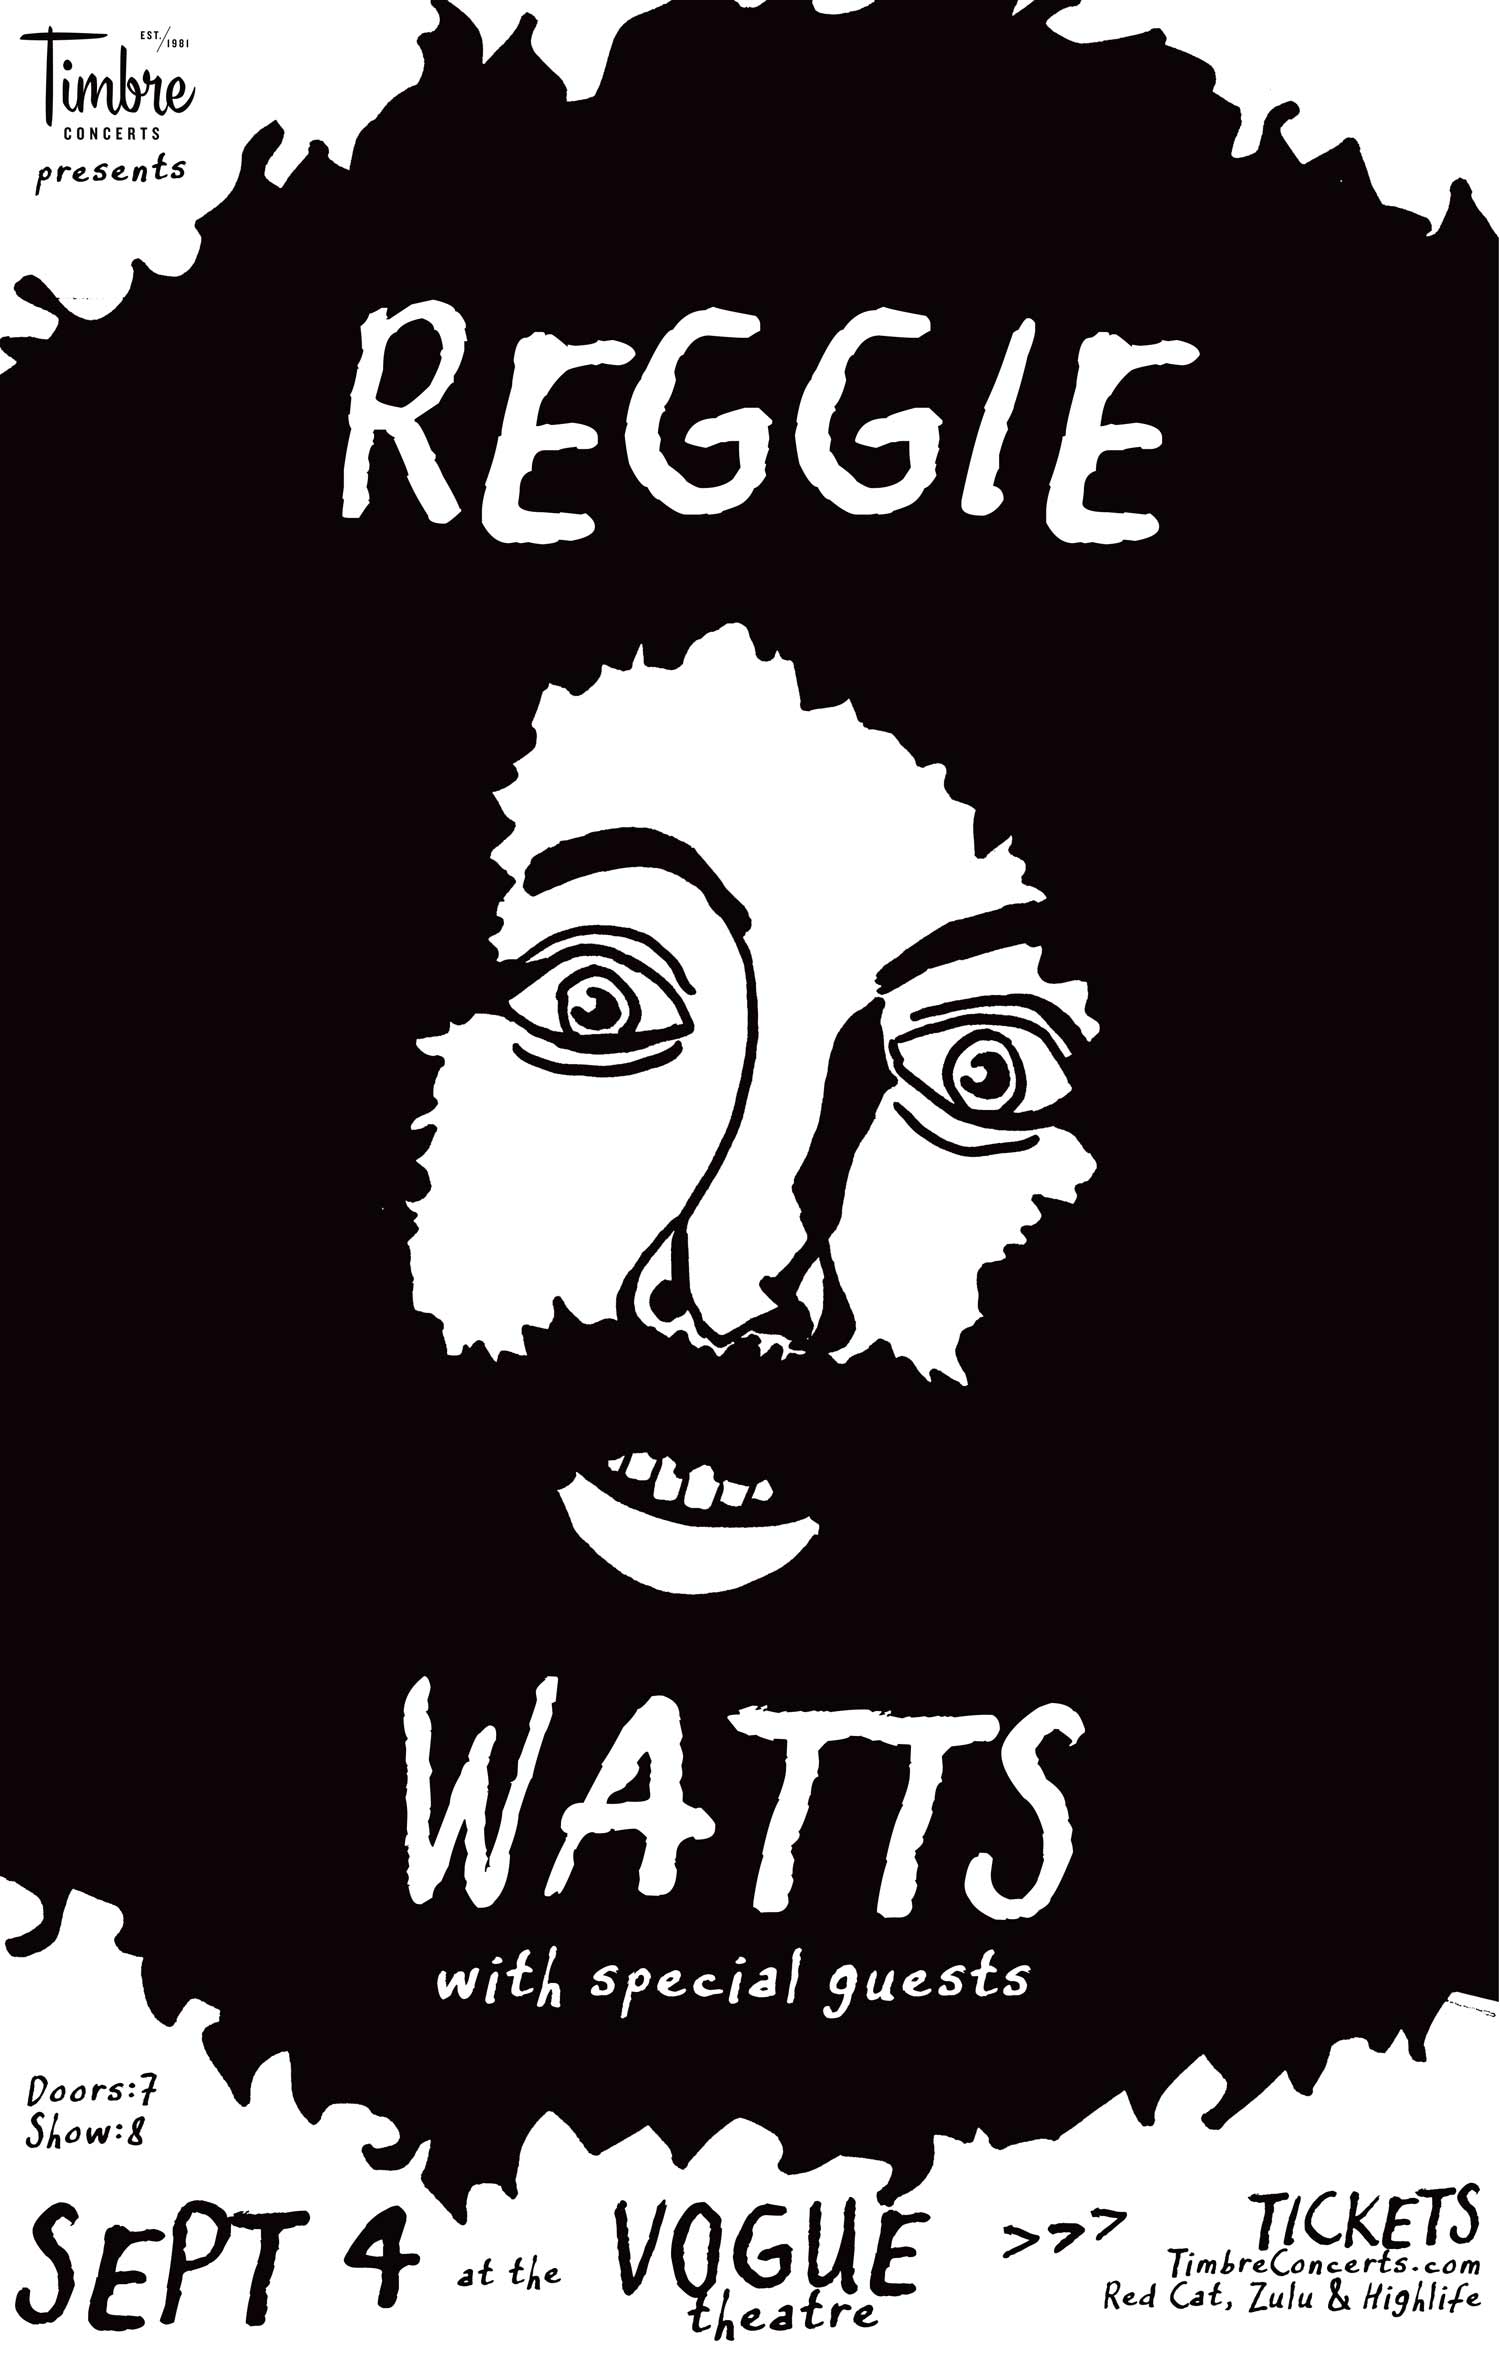 Illustrated show poster for Reggie Watts